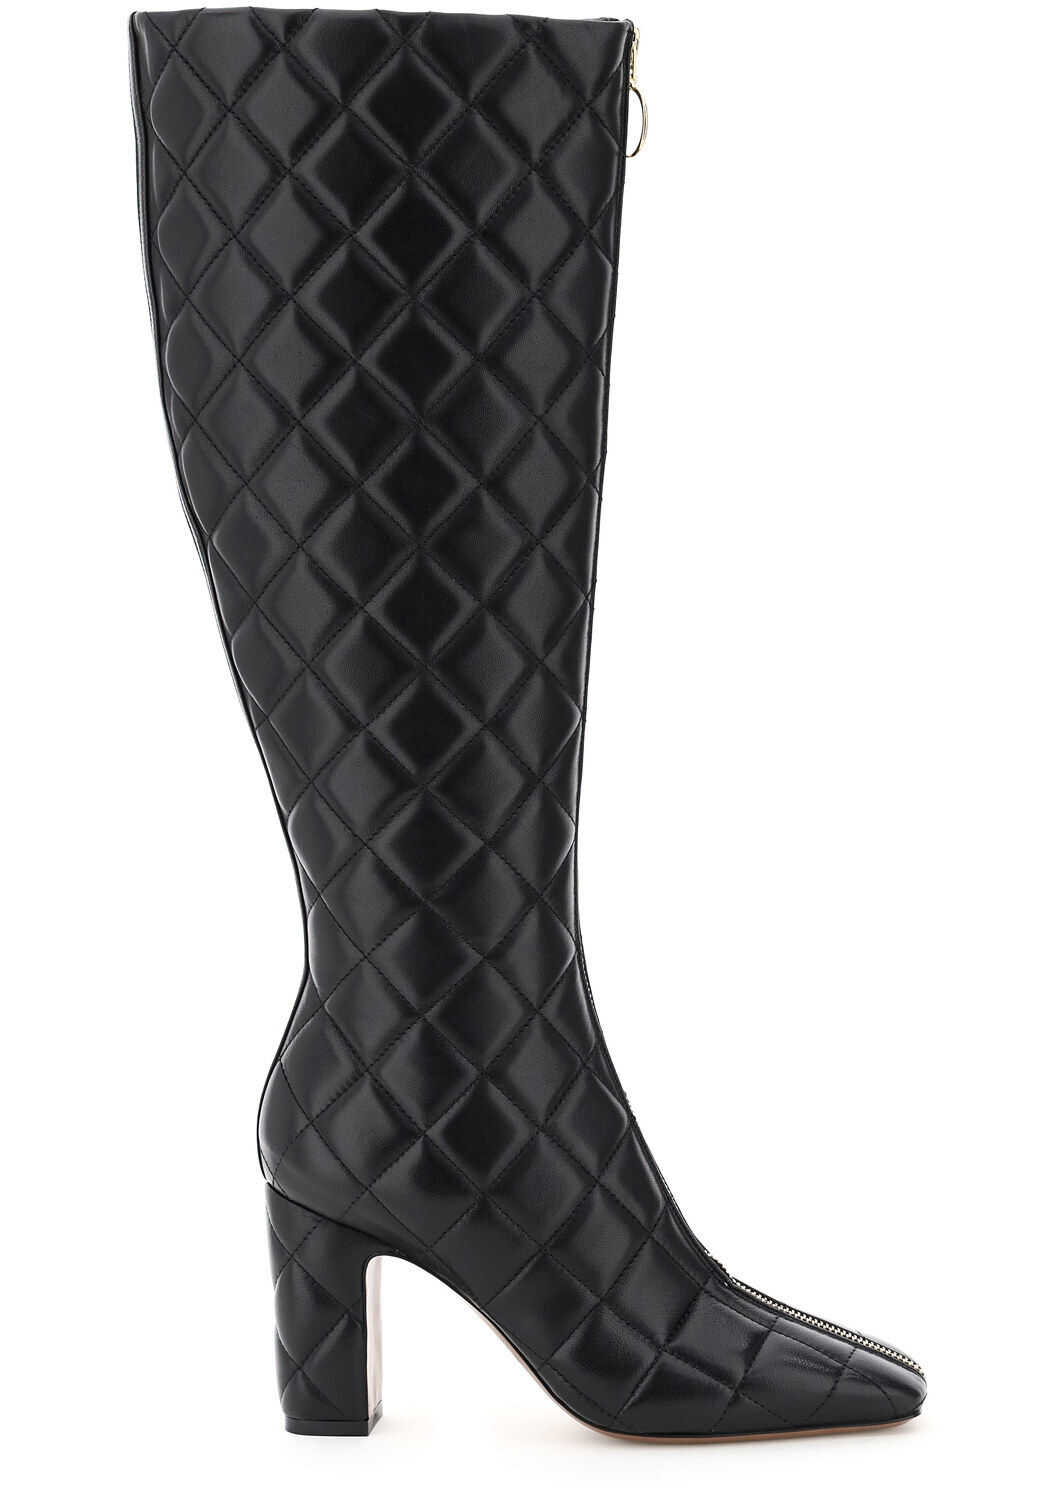 L'Autre Chose High Boots In Quilted Nappa LDM089 85WP2615 BLACK imagine b-mall.ro